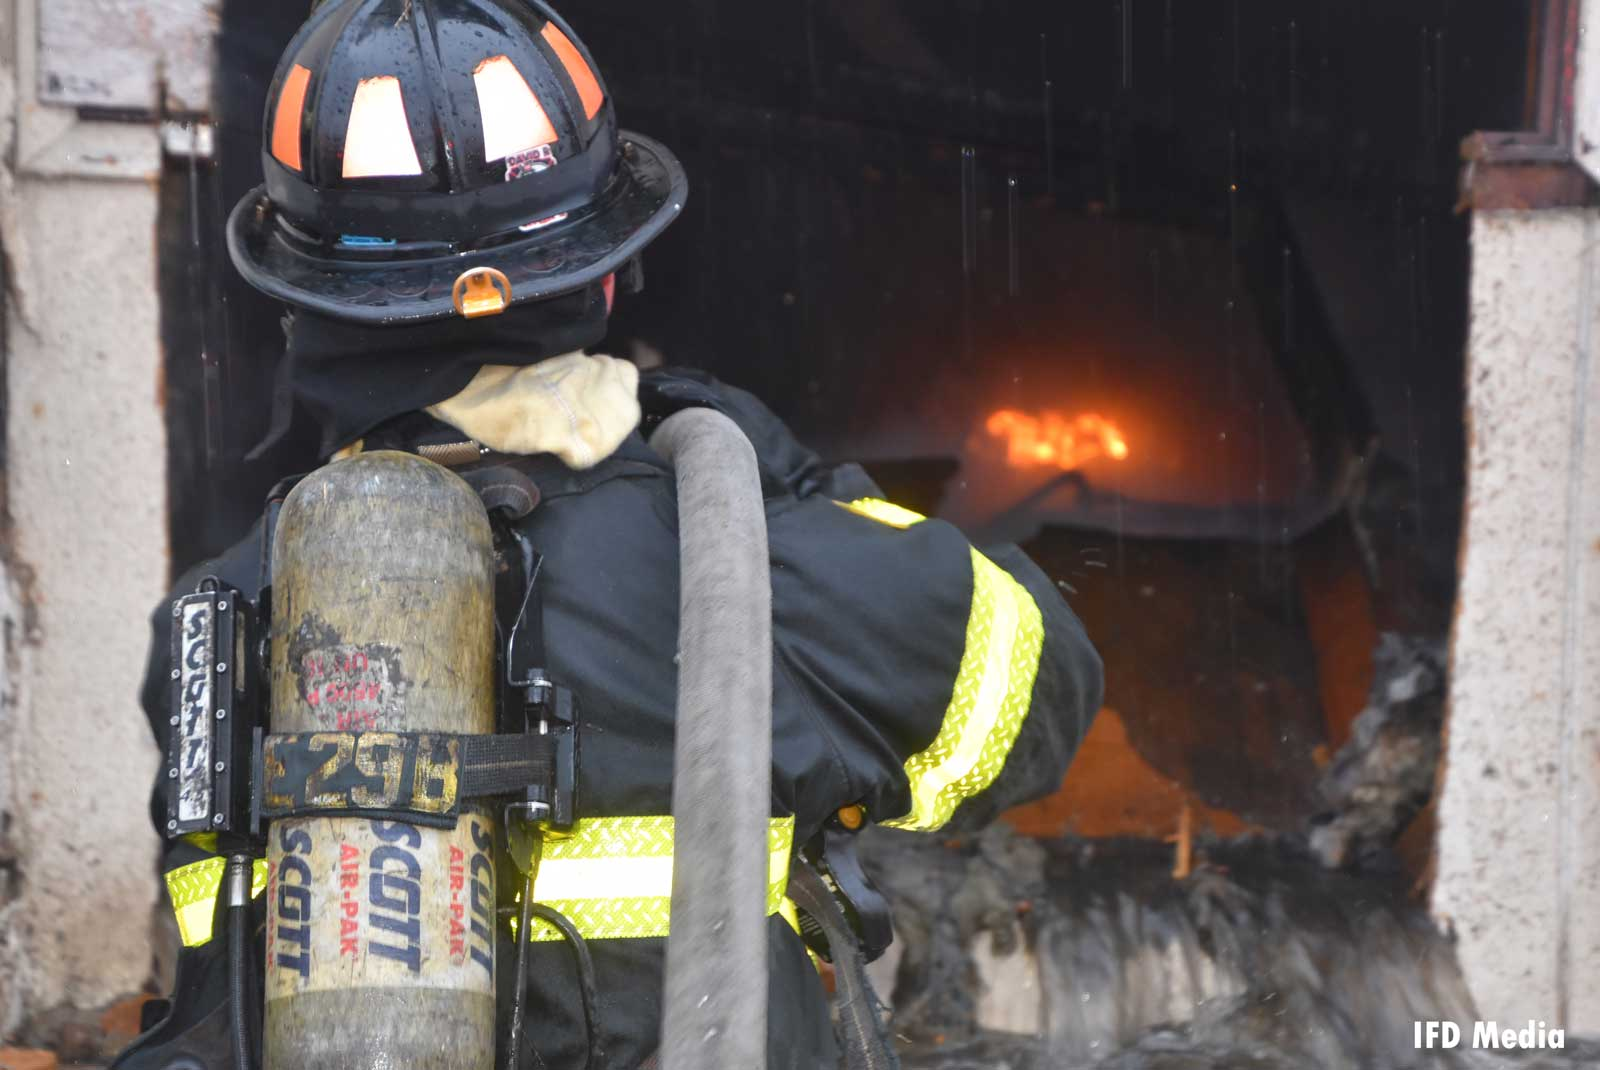 Firefighter with a hoseline over his shoulder confronting the flames